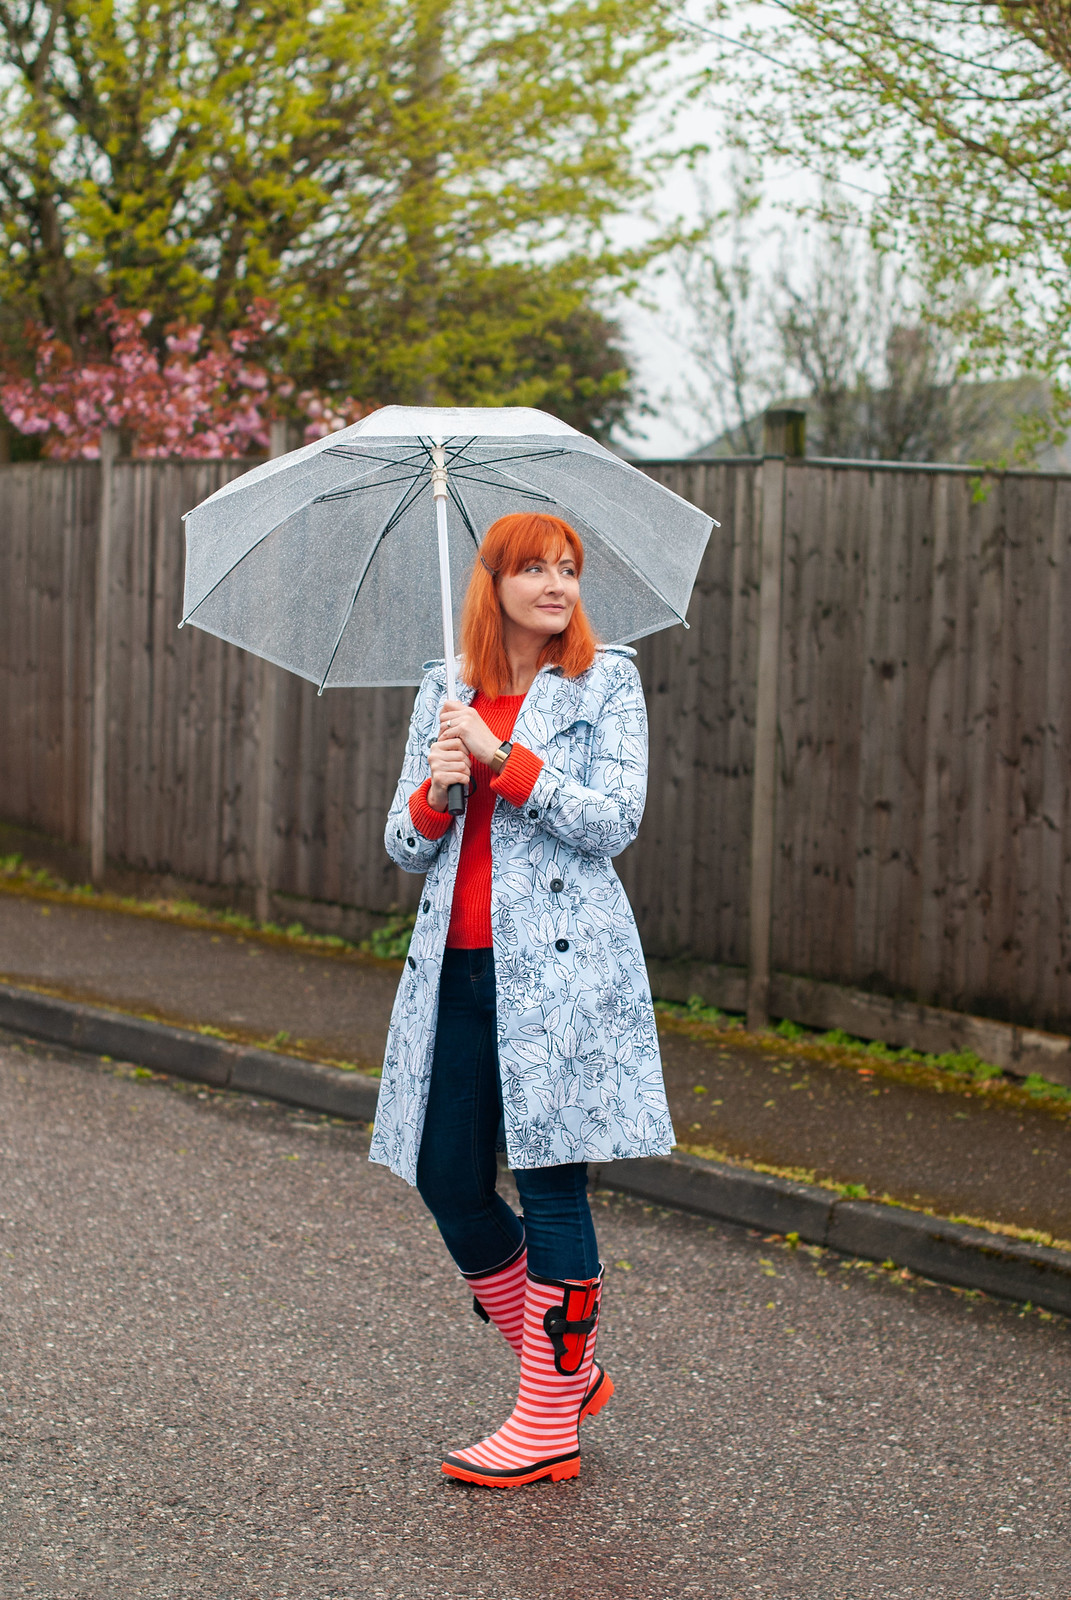 The Perfect Wellies for Wide Calves - Spring Showers Outfit, Over 40 Fashion | Not Dressed As Lamb, over 40 fashion blog